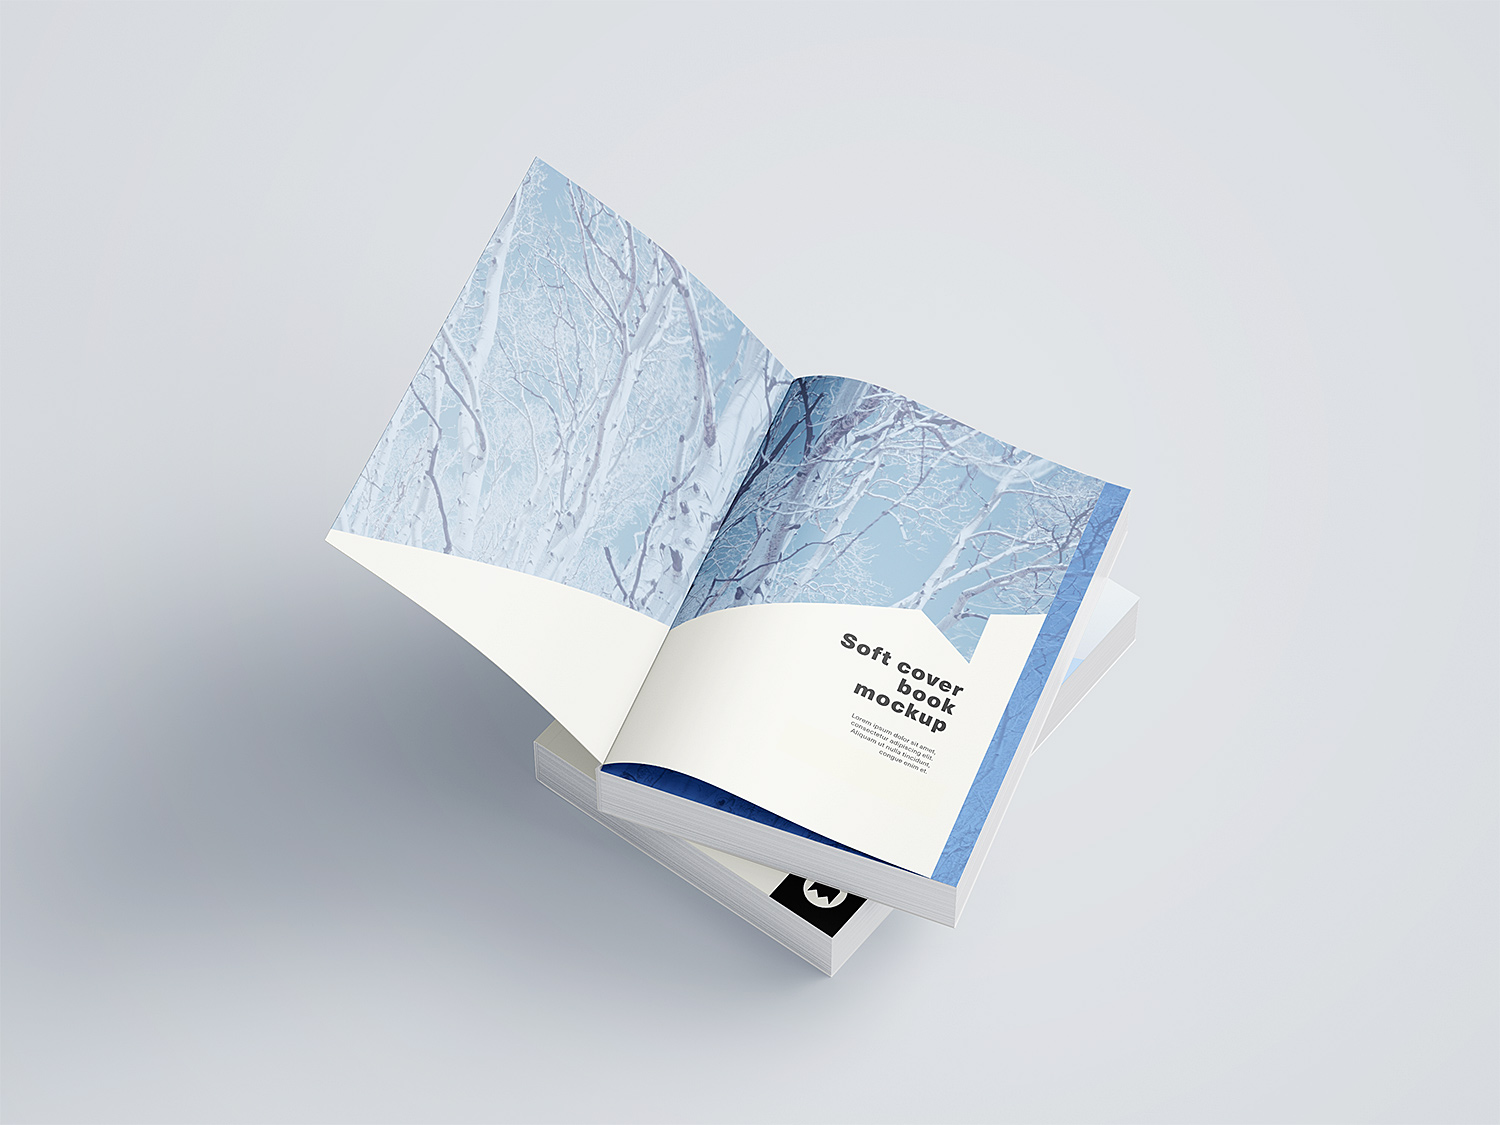 Soft_Cover_Book_Mockup_03